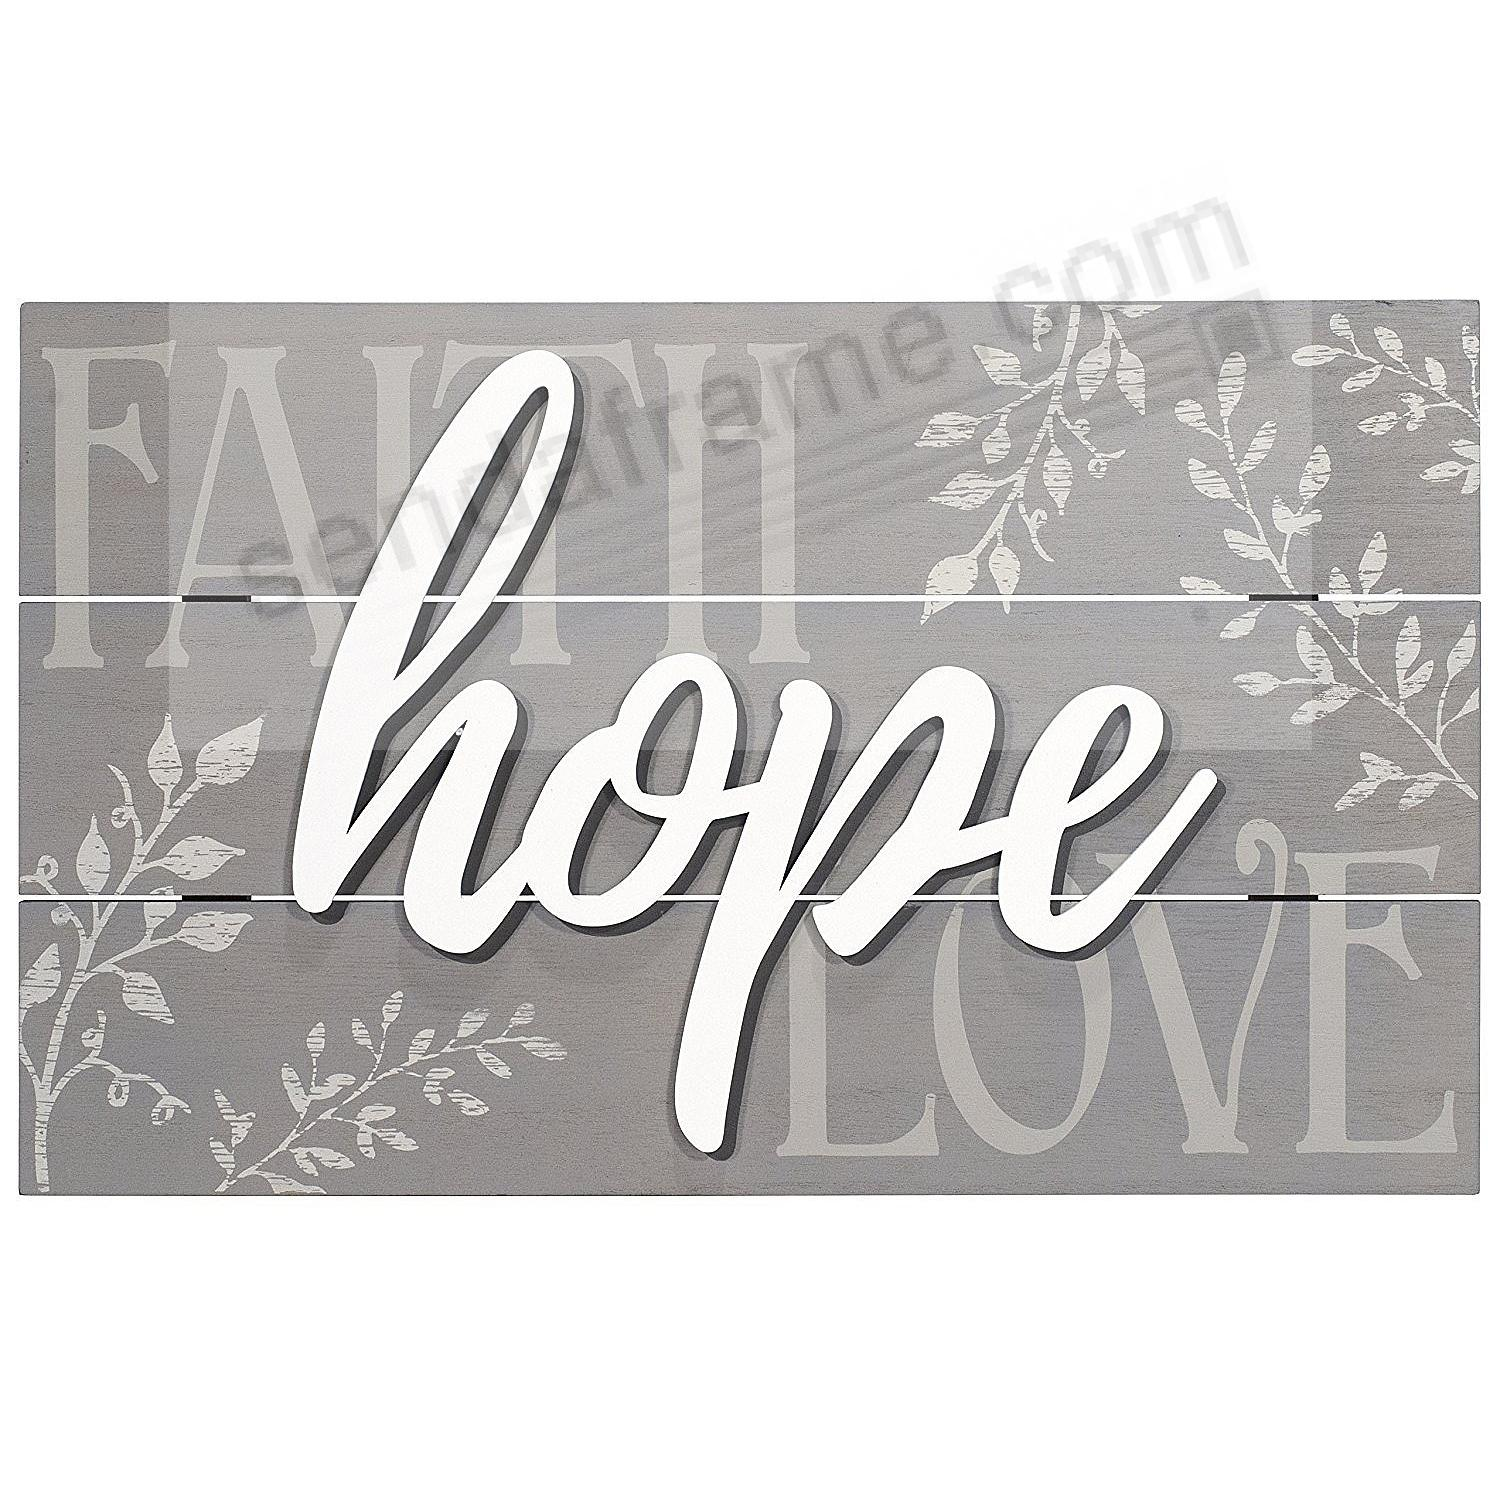 FAITH - HOPE - LOVE Box Sign 18x11 by Malden®